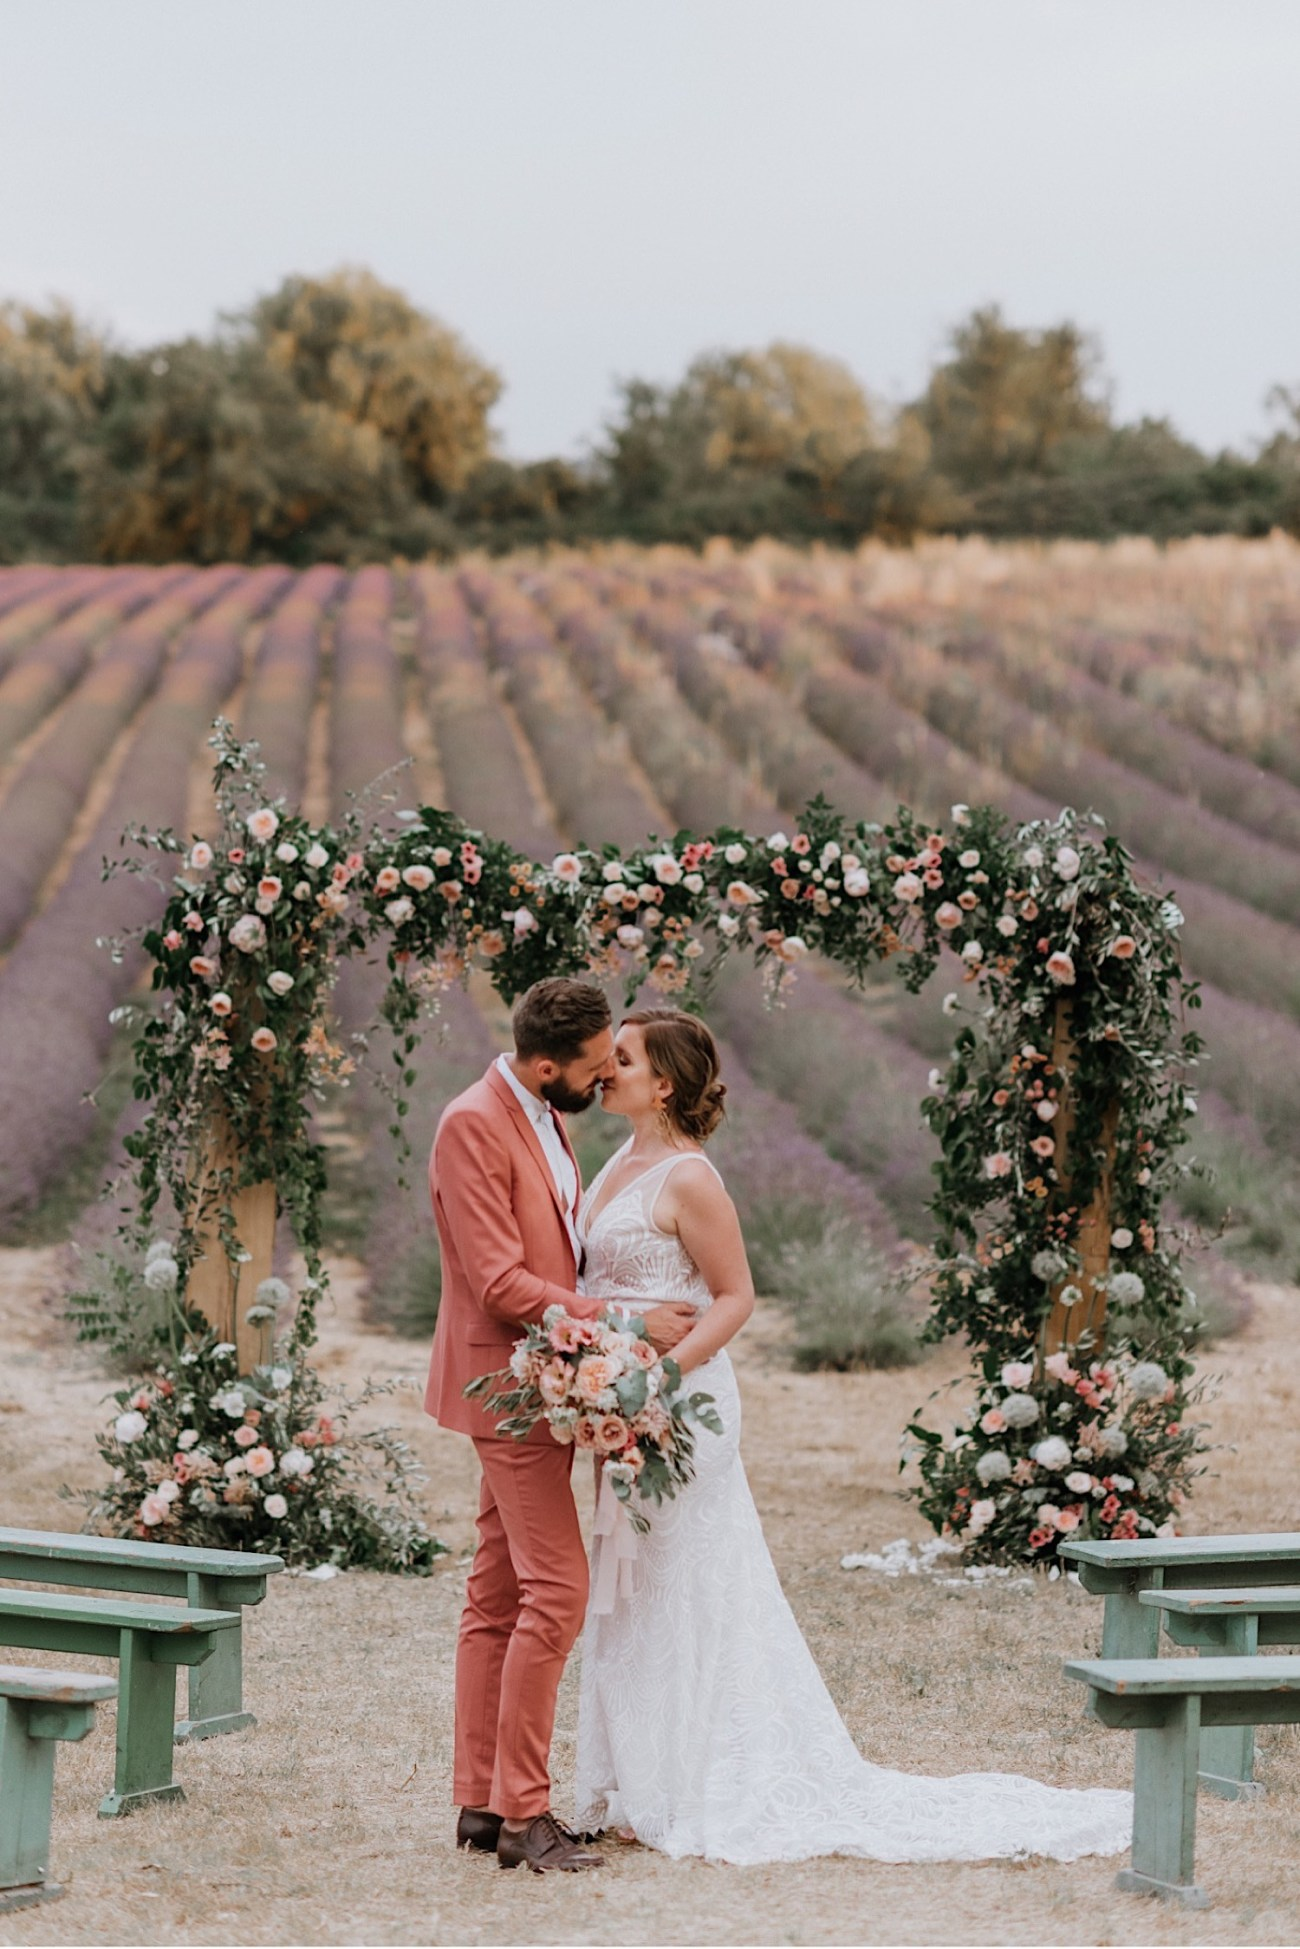 Terre Ugo Un Marriage En Provence Lavender Field Wedding French Wedding Provence Wedding Destination Wedding France Photographe De Marriage Provence France Anais Possamai Photography 27